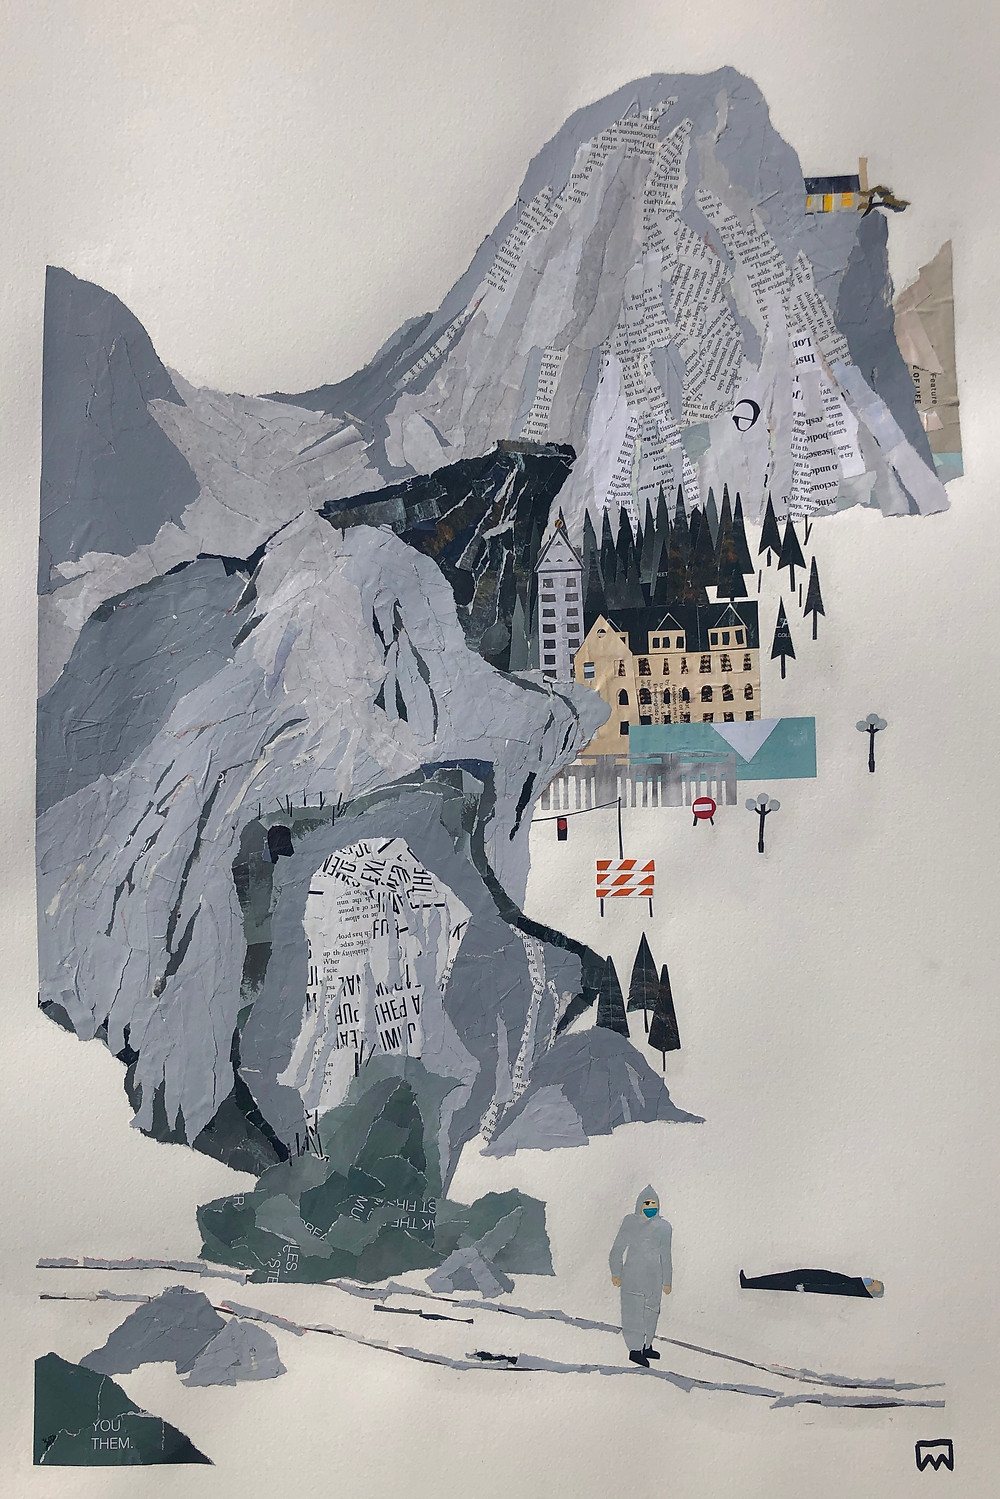 Artwork by Ray Monde of a Chinese landscape with a shuttered Seattle city